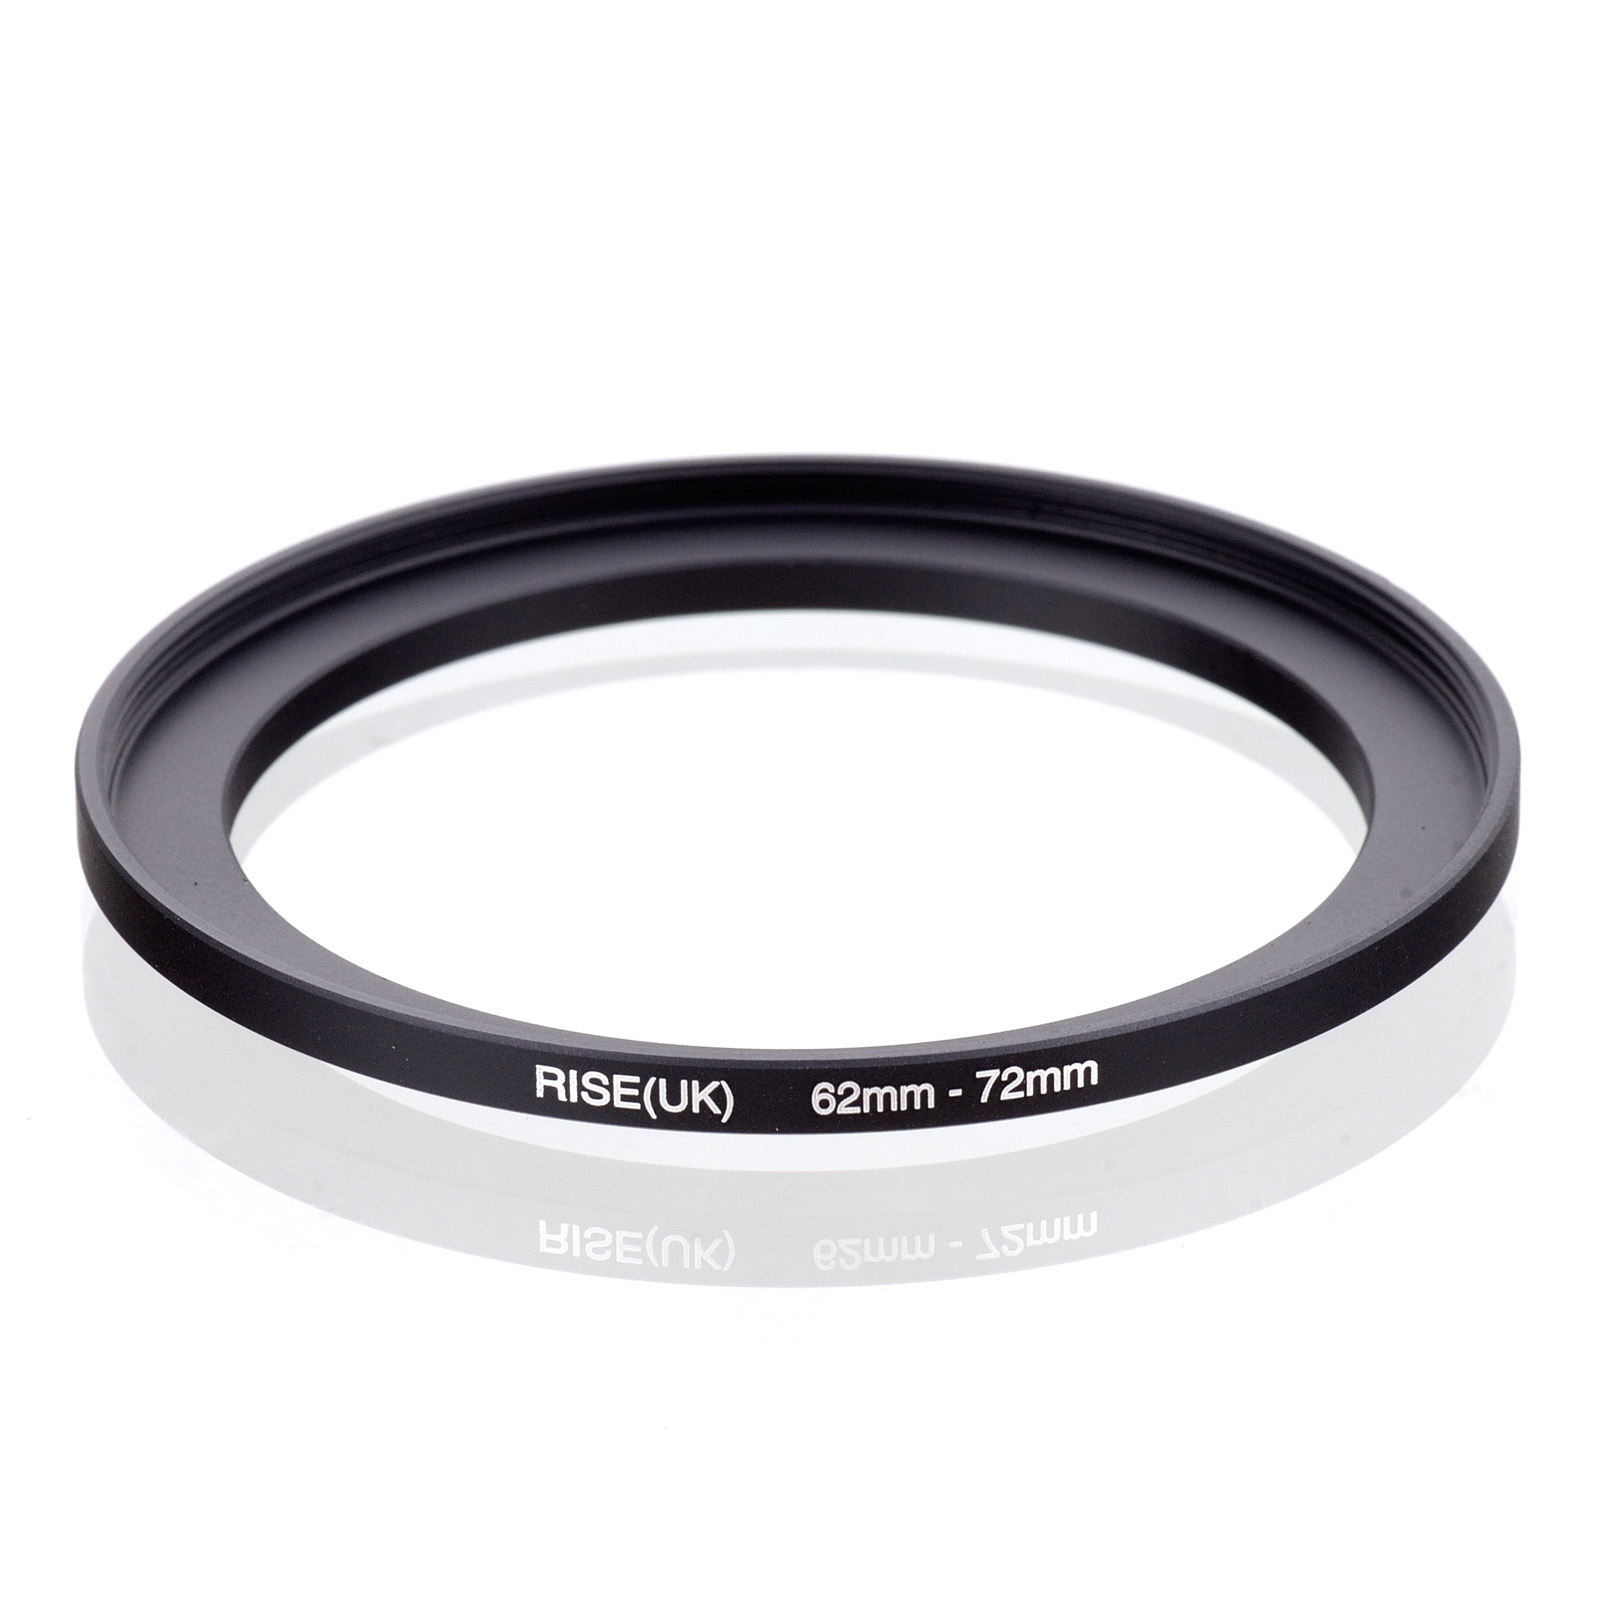 RISE(UK) 62mm-72mm 62-72 Mm 62 To 72 Step Up Filter Ring Adapter